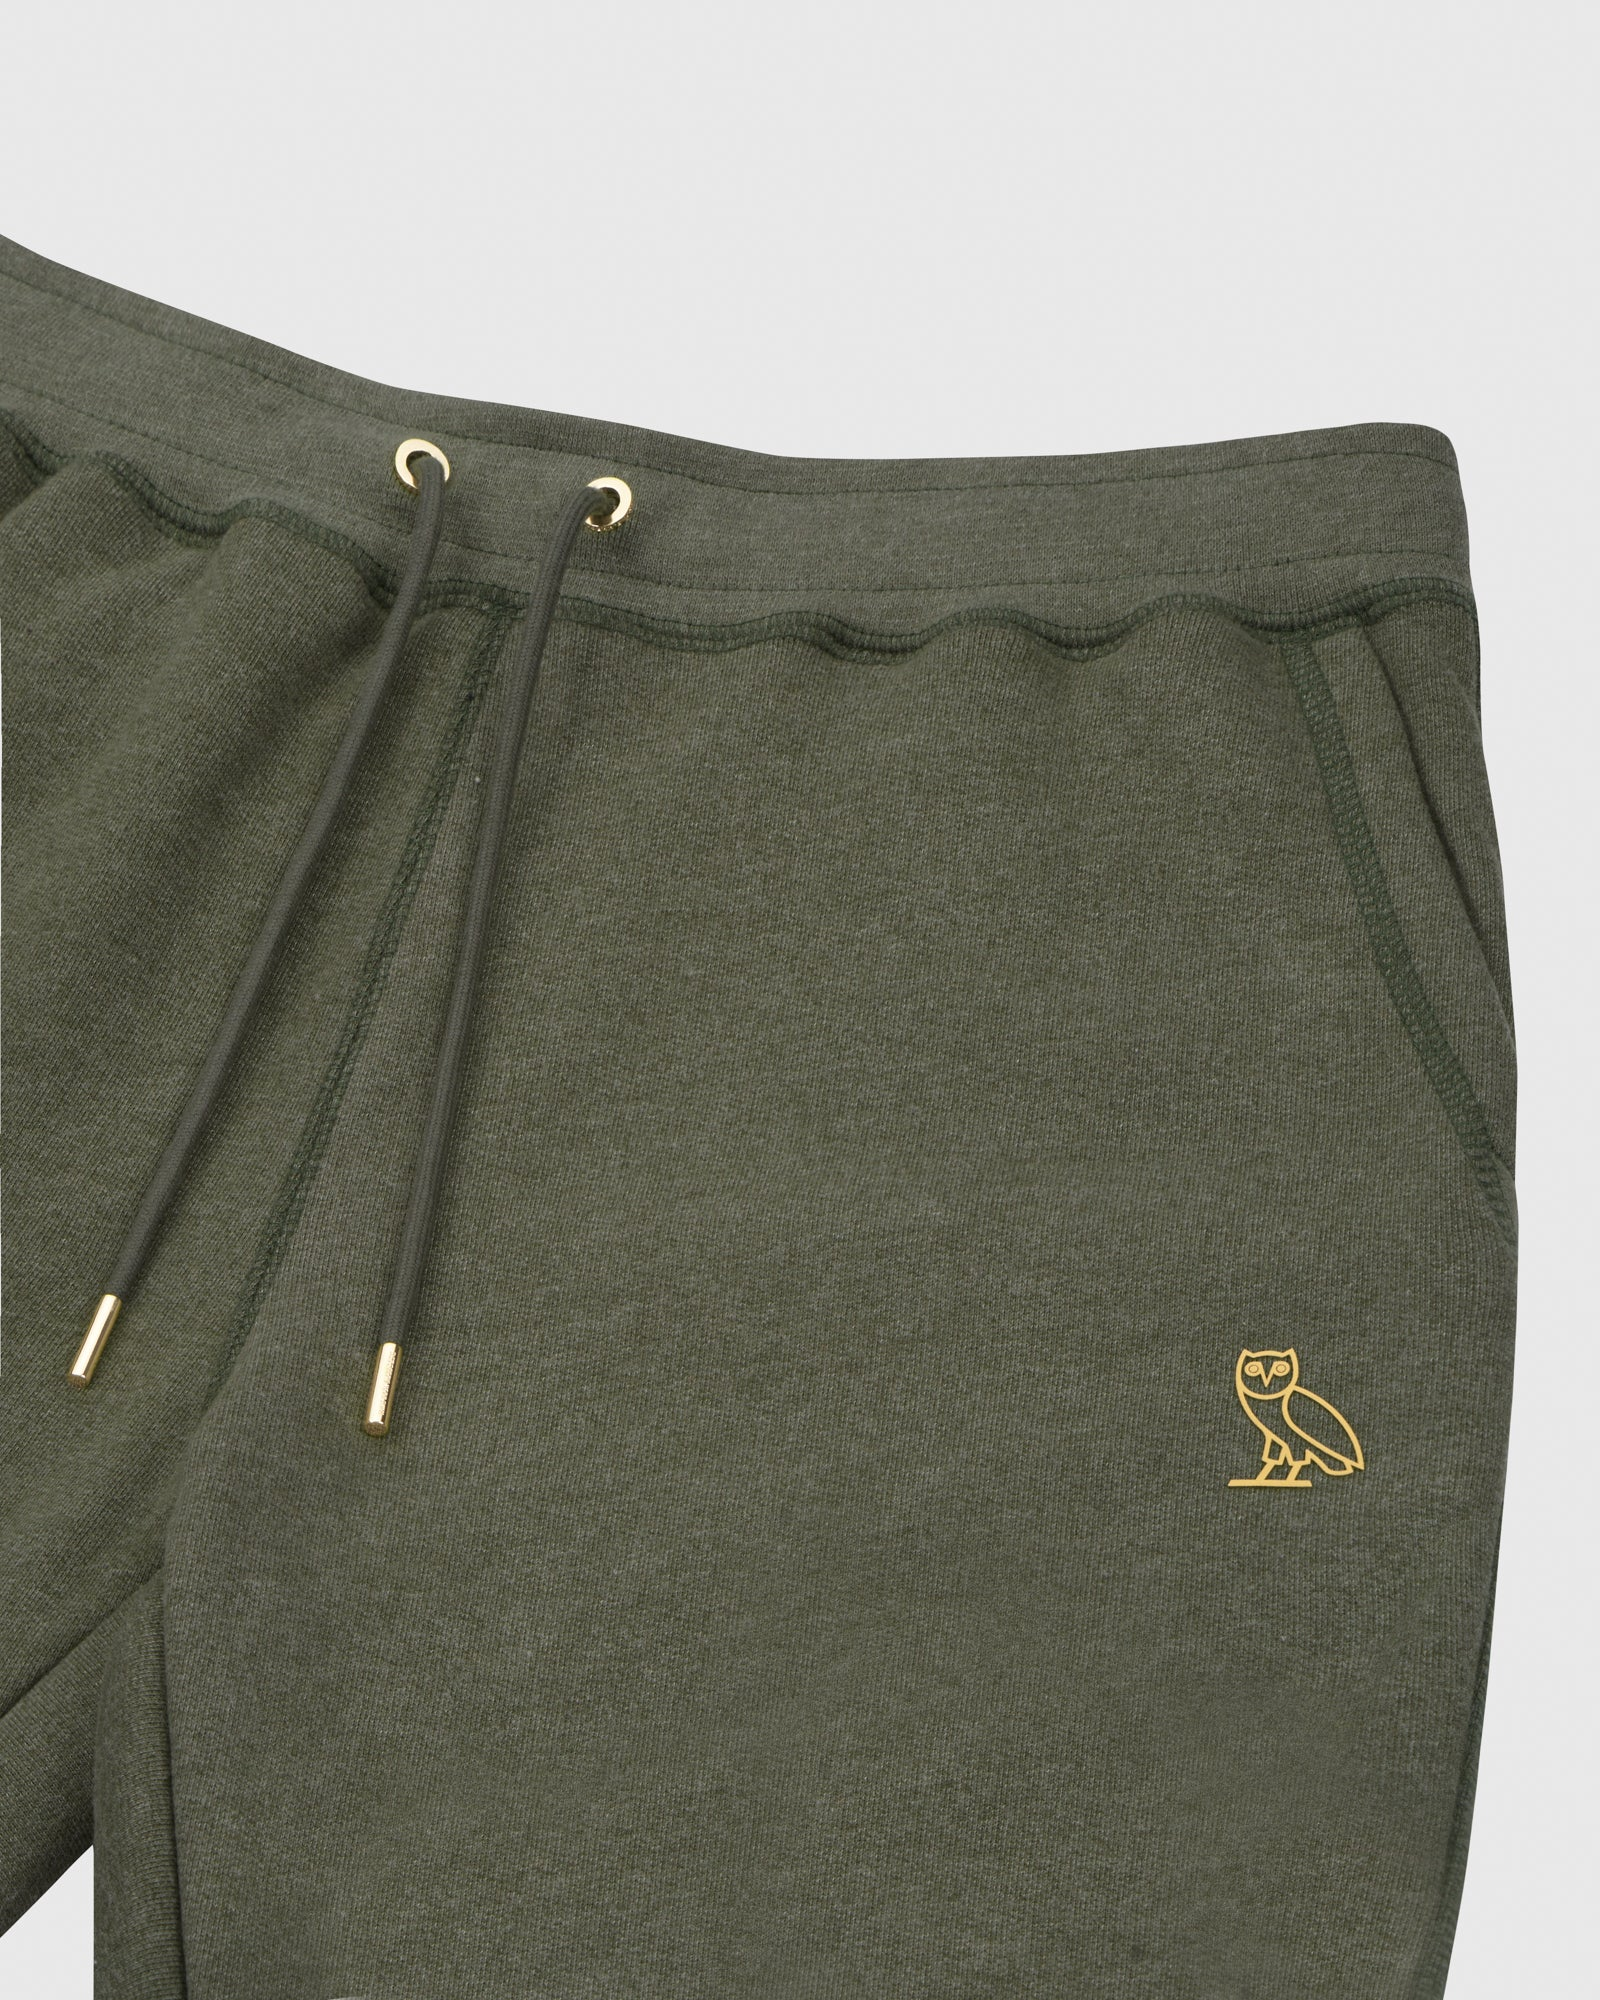 OVO FRENCH TERRY SWEATPANT - HEATHER MILITARY GREEN IMAGE #3